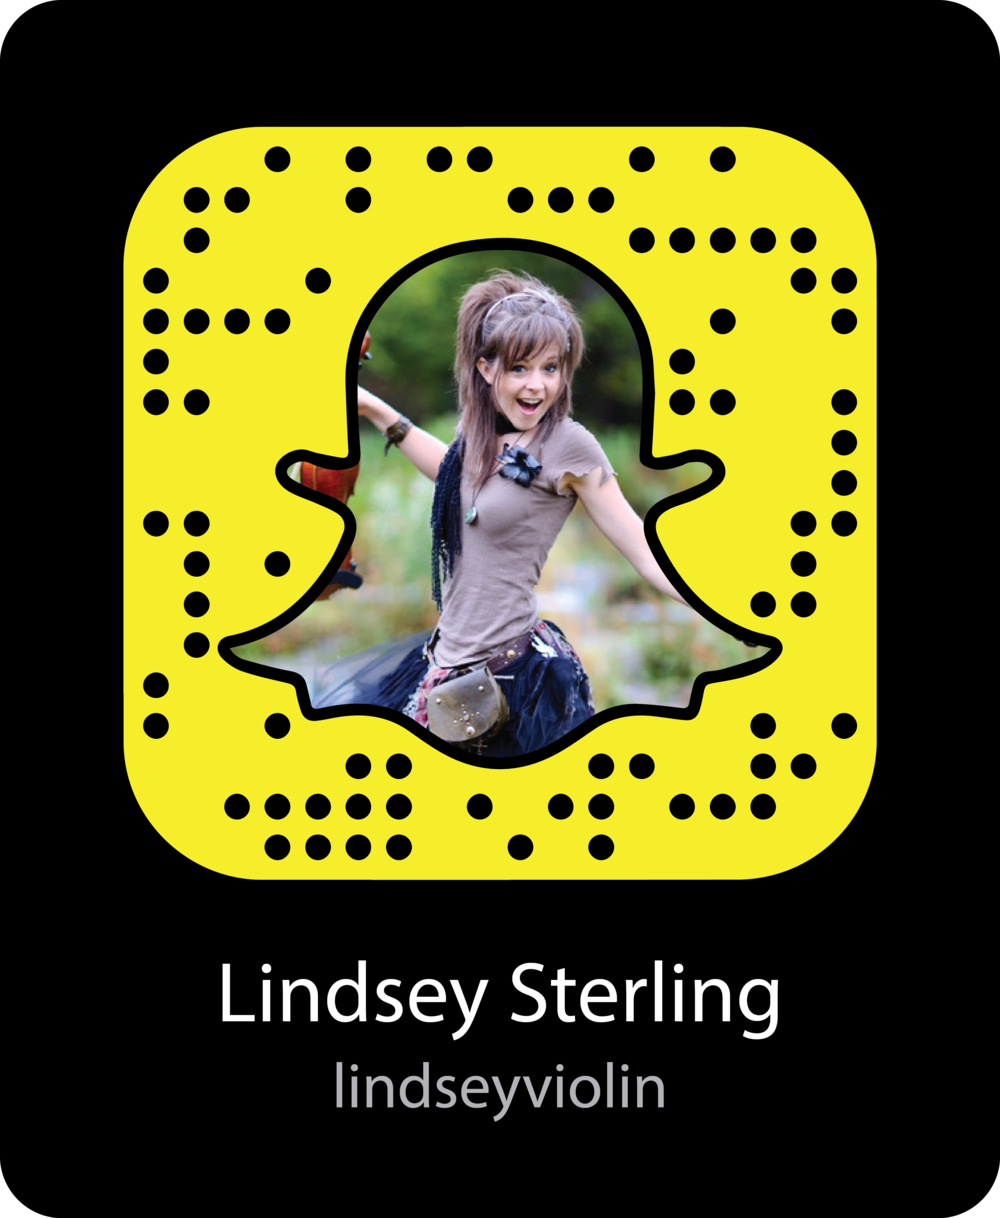 lindsey-sterling-violin-youtube-celebrity-snapchat-snapcode